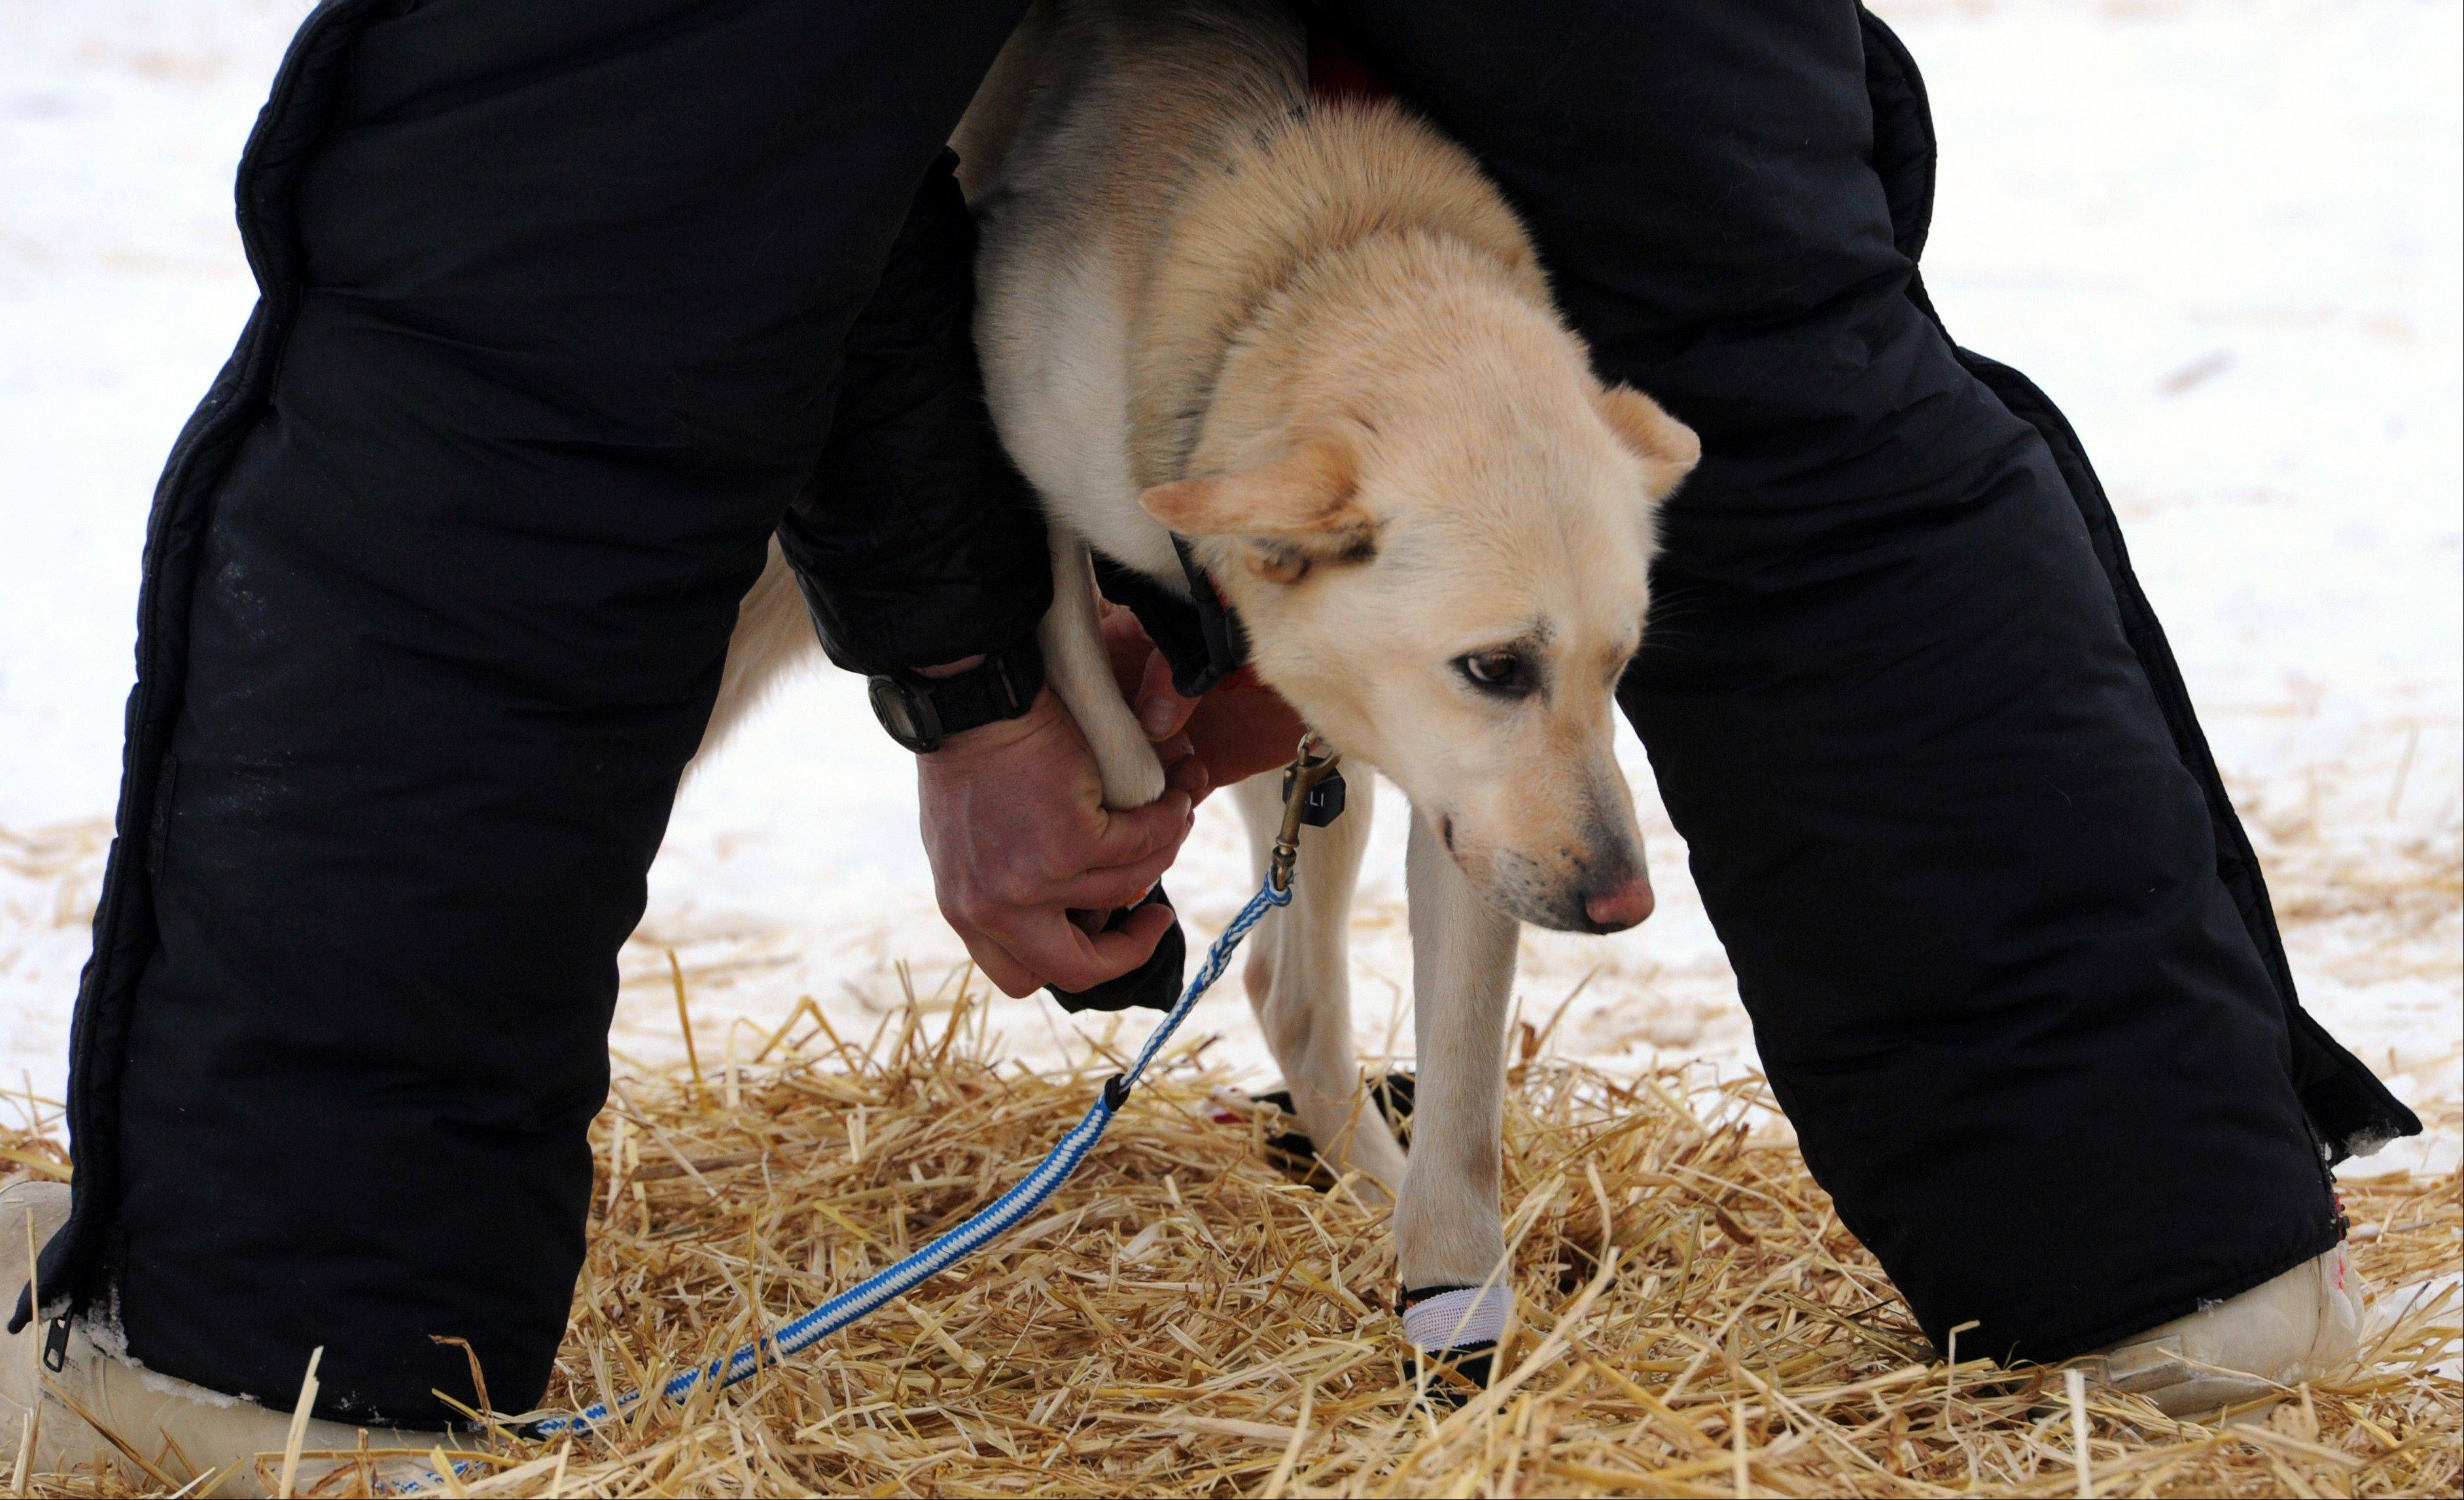 Matt Giblin puts booties on leader Kenya before leaving the Finger Lake checkpoint in Alaska during the Iditarod Trail Sled Dog Race on Monday, March 4, 2013.